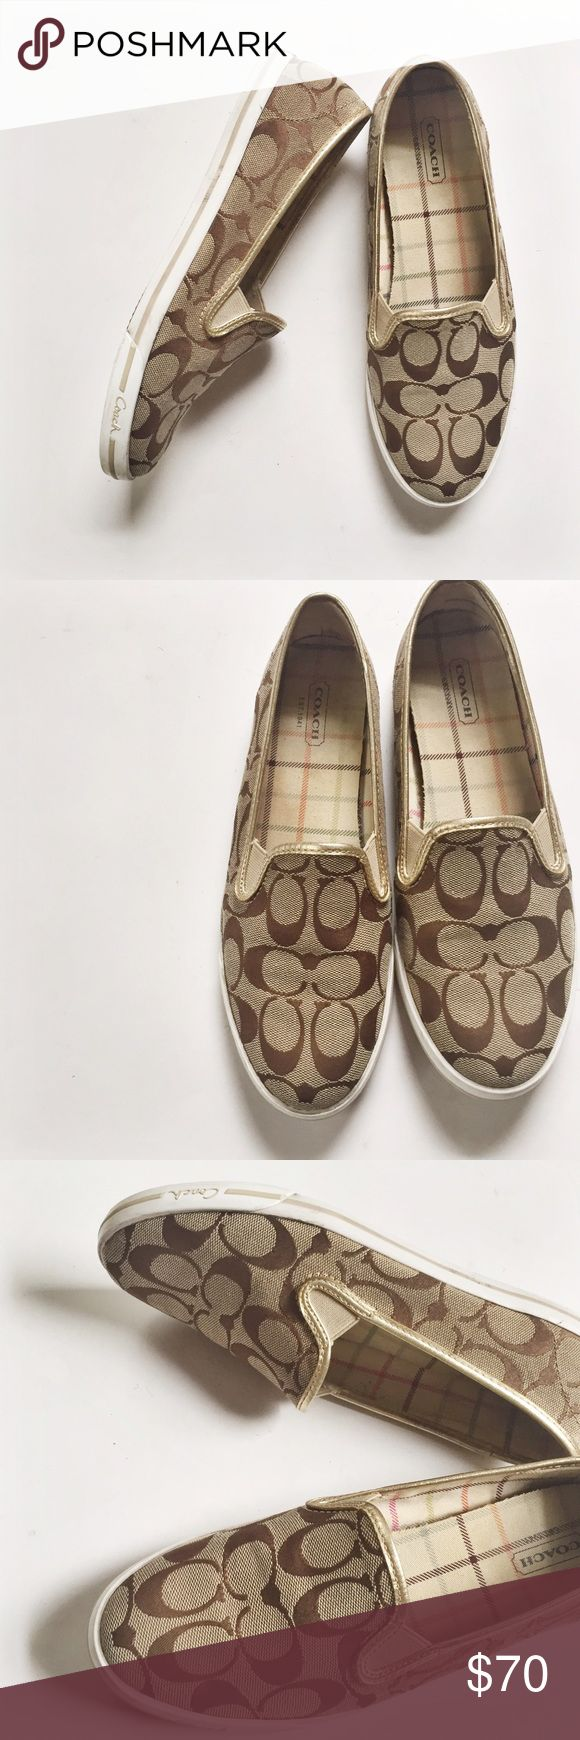 Coach Sneakers Goldprice drop Gold and brown coach sneaker great condition !!! Coach Shoes Sneakers